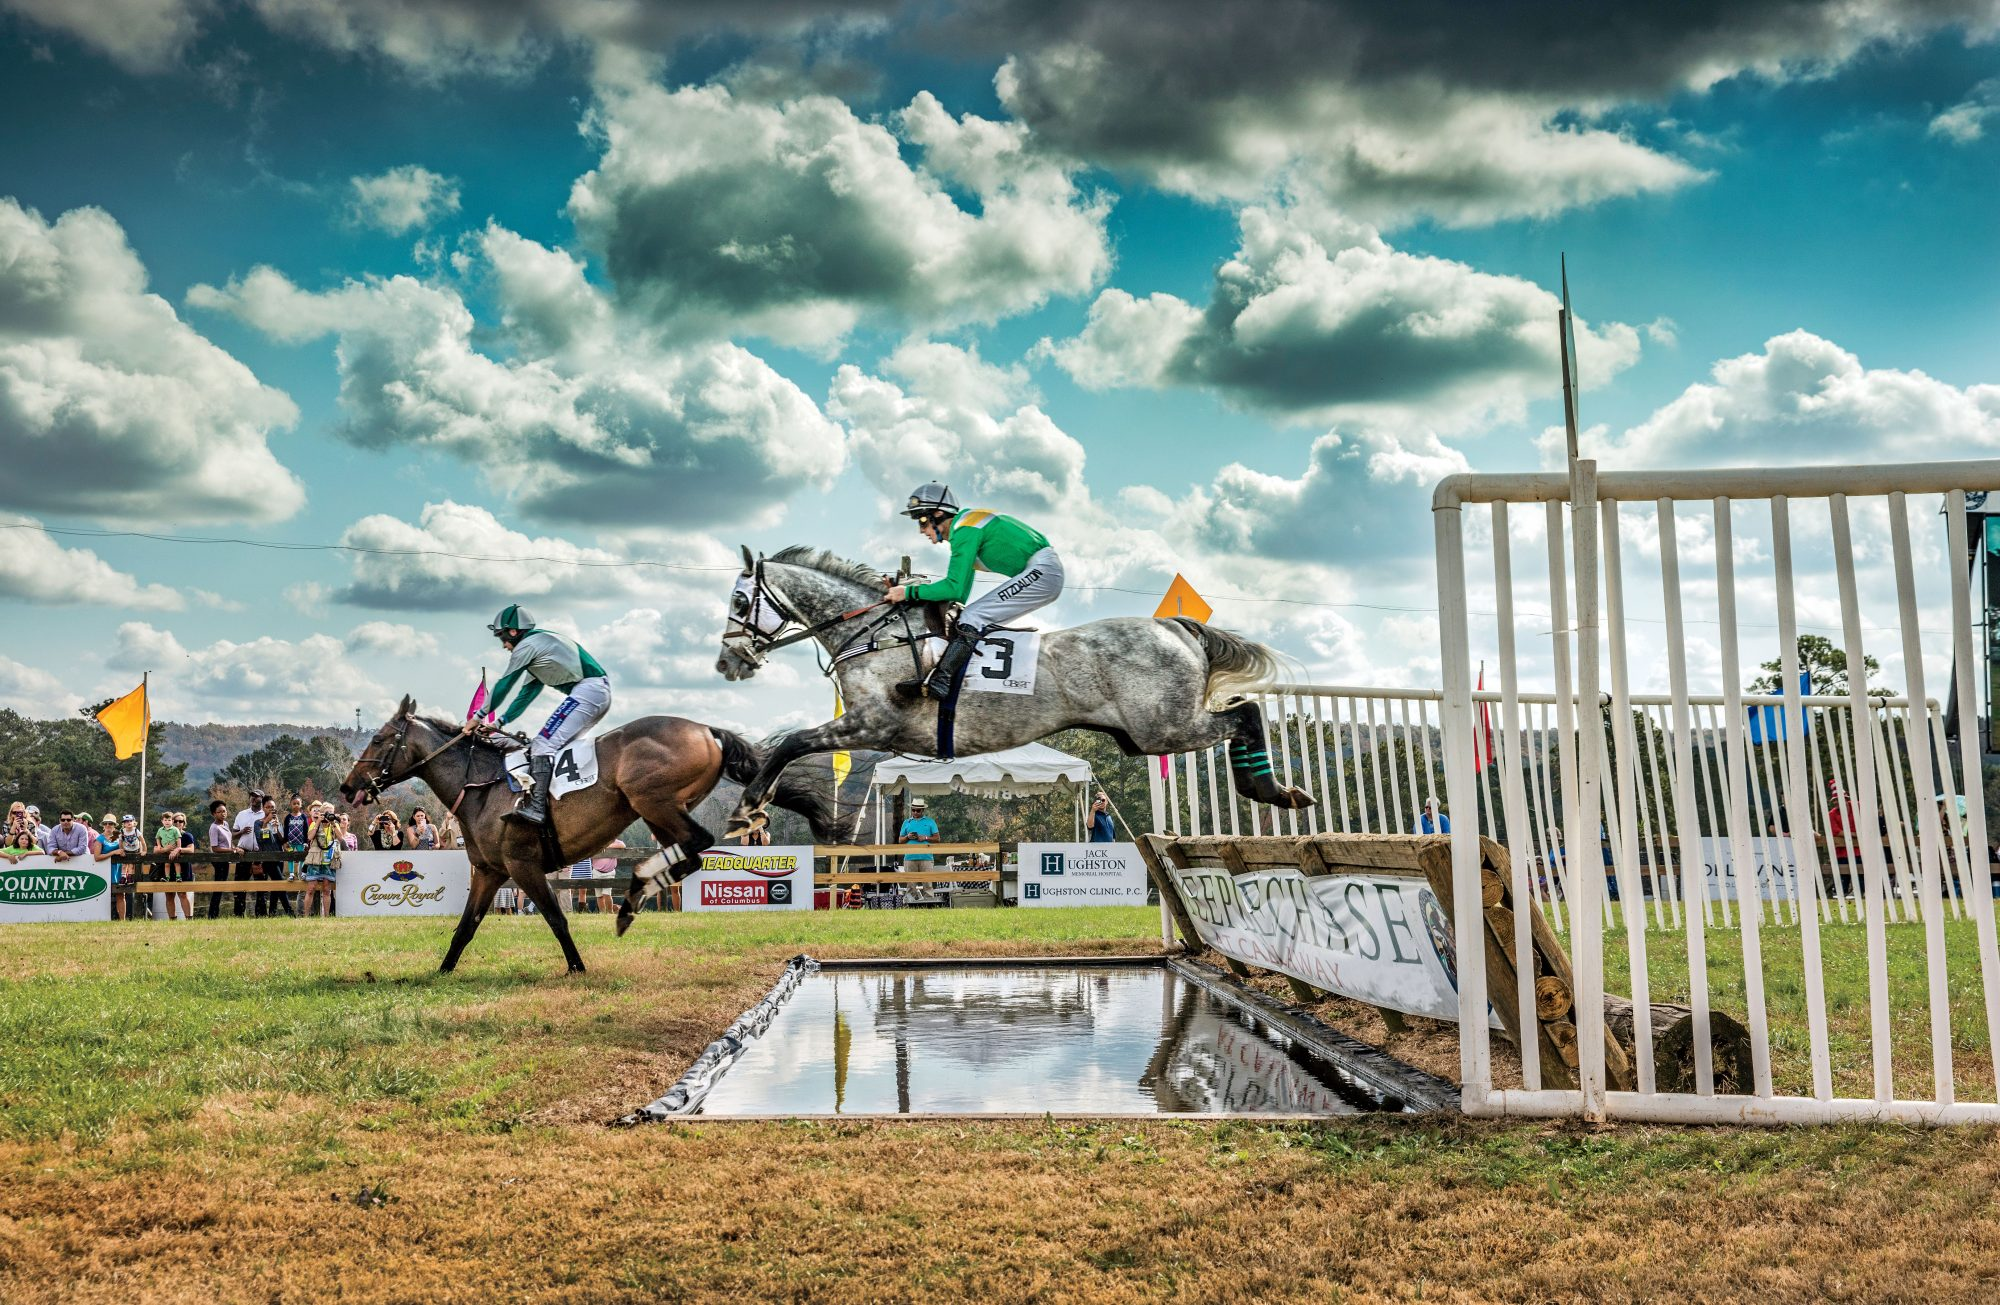 fc5792d17cc We re Off to the Races at Callaway Gardens Steeplechase - Southern ...